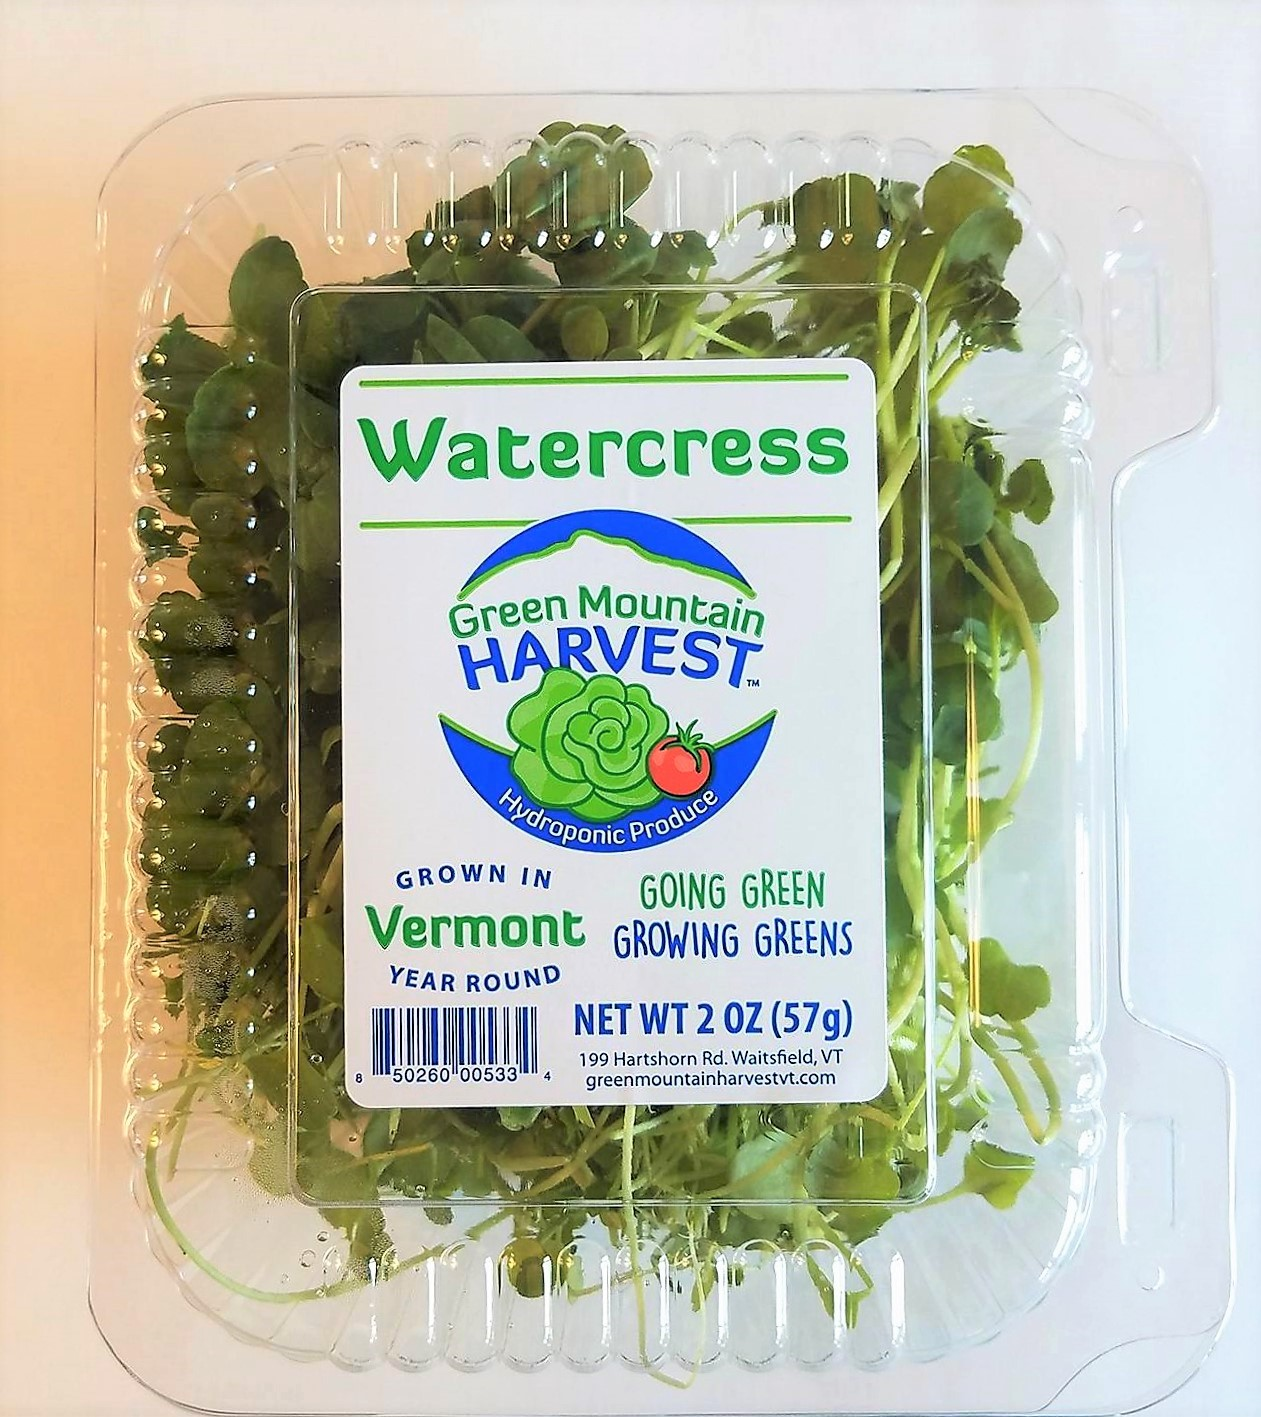 gmhwatercress.jpg